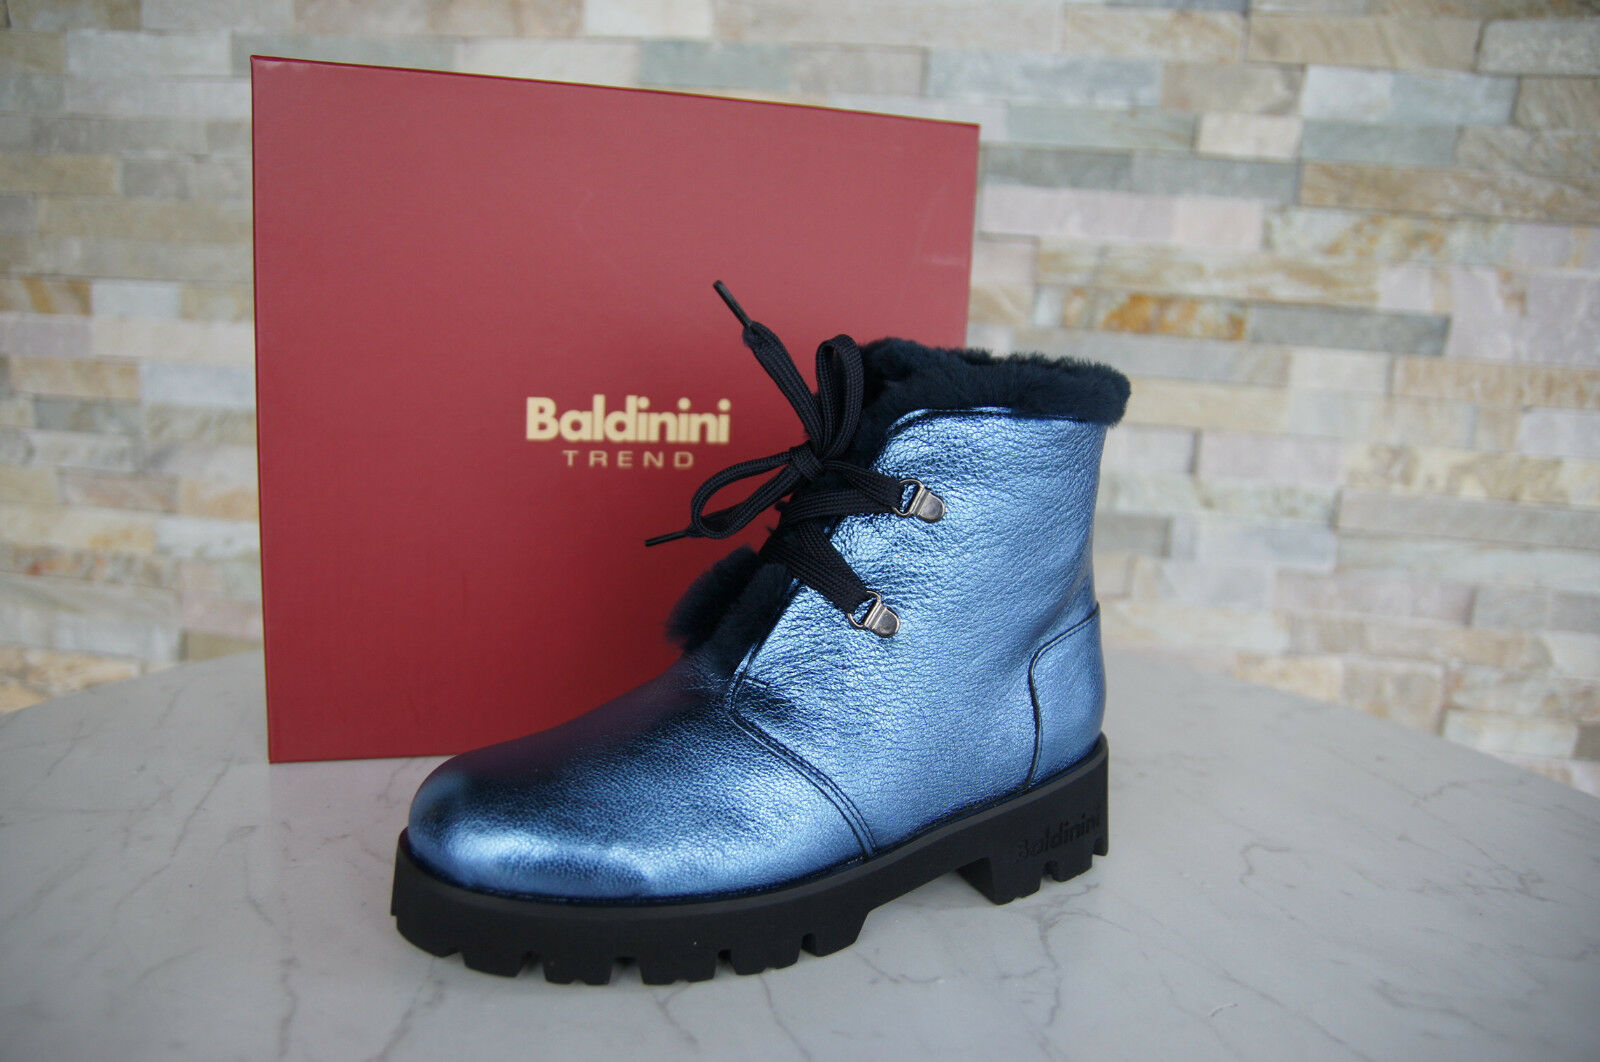 Baldinini Trend Size 39 Ankle Boots fur 848200 shoes bluee New Previously